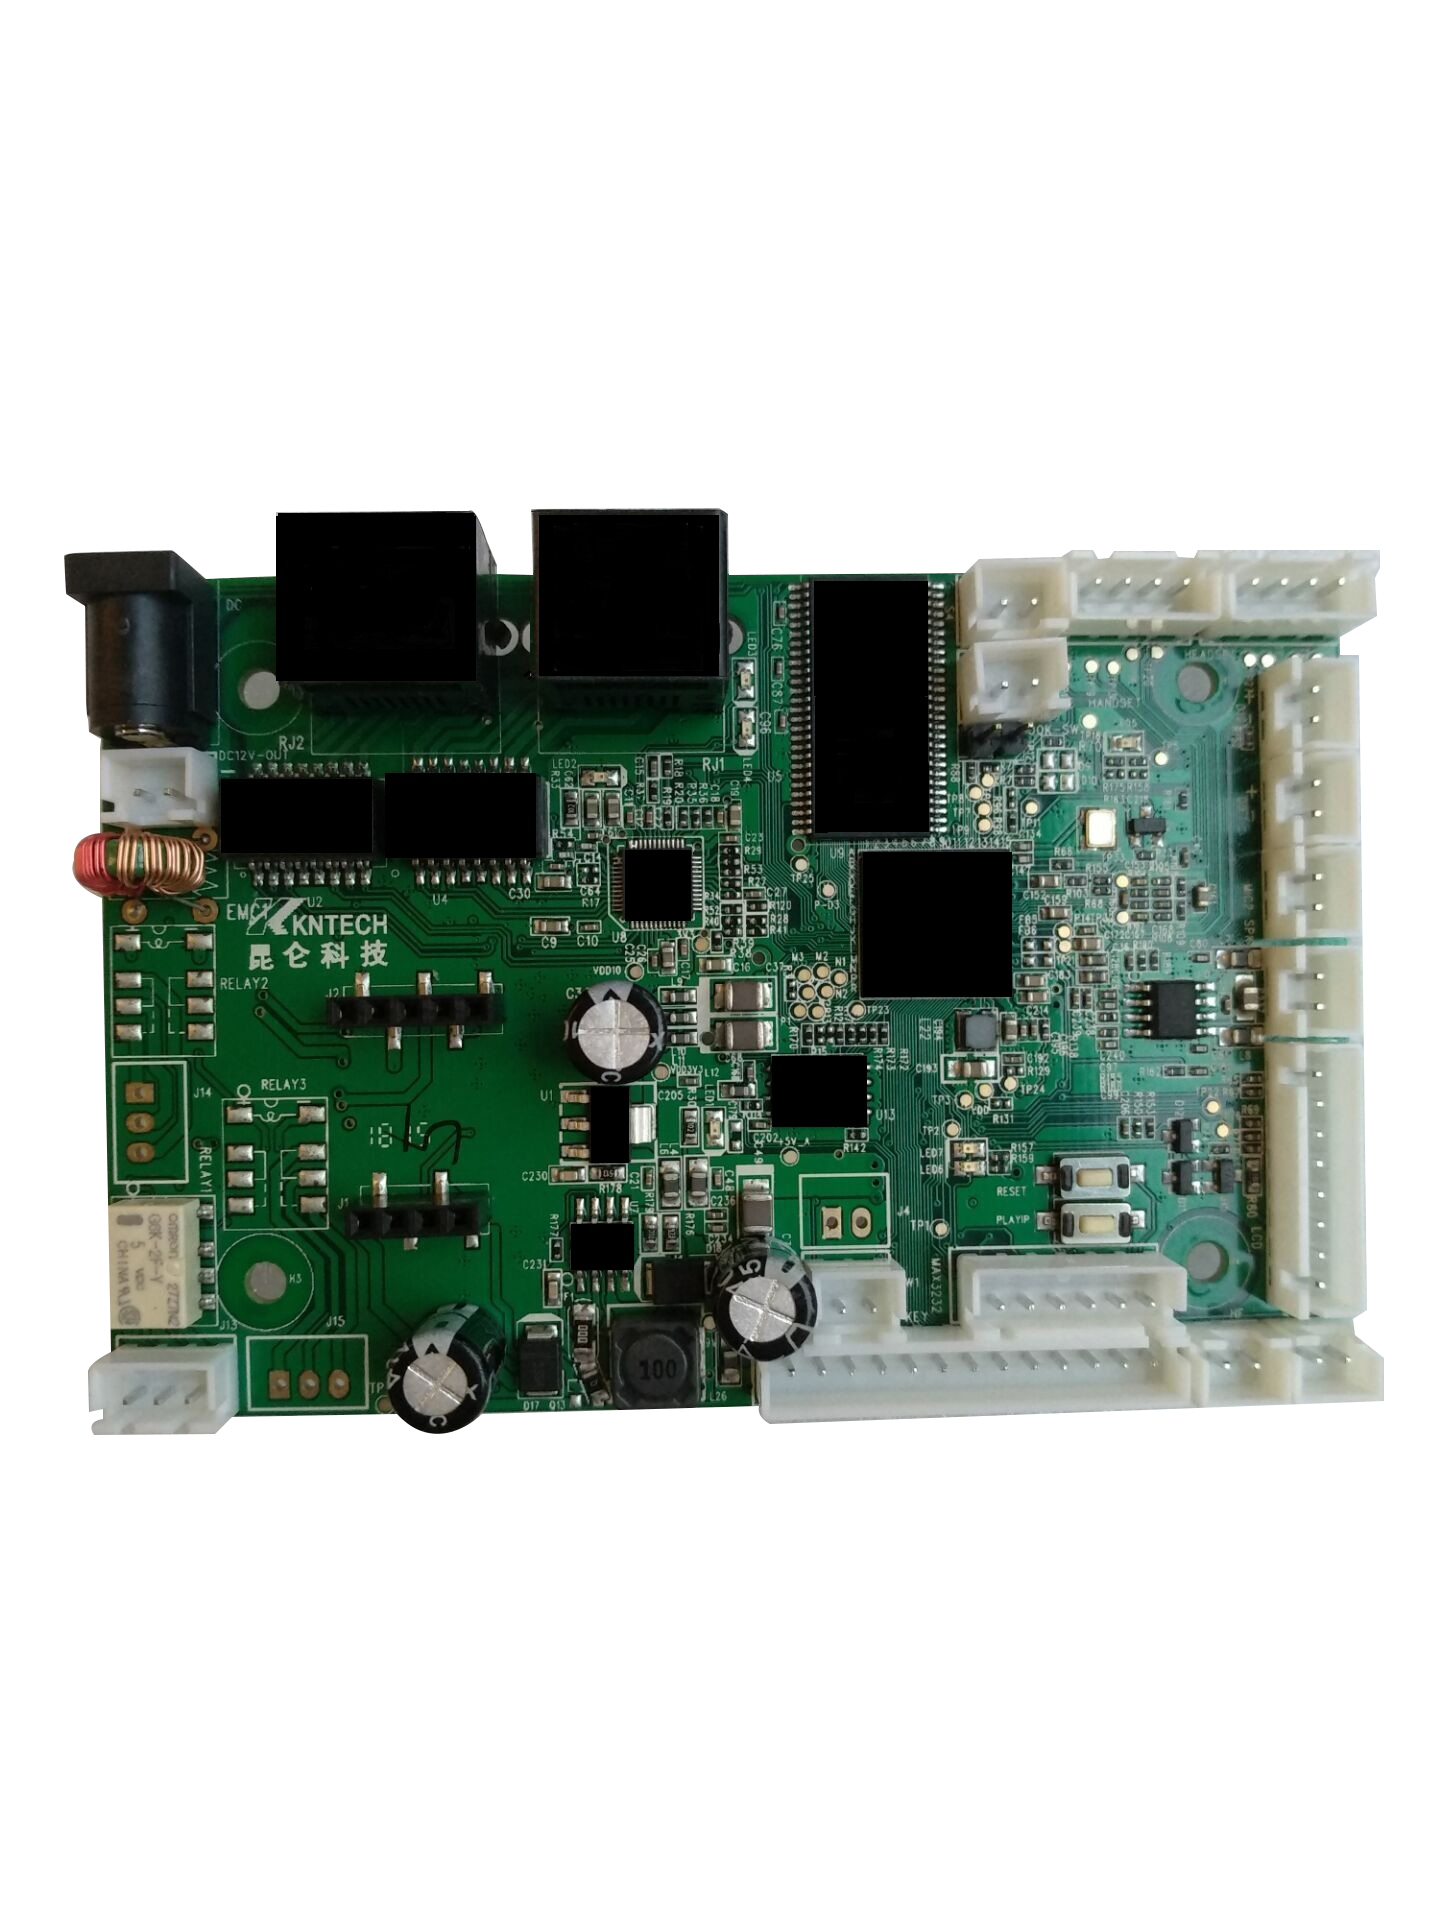 VoIP SIP Telephone PCB Board